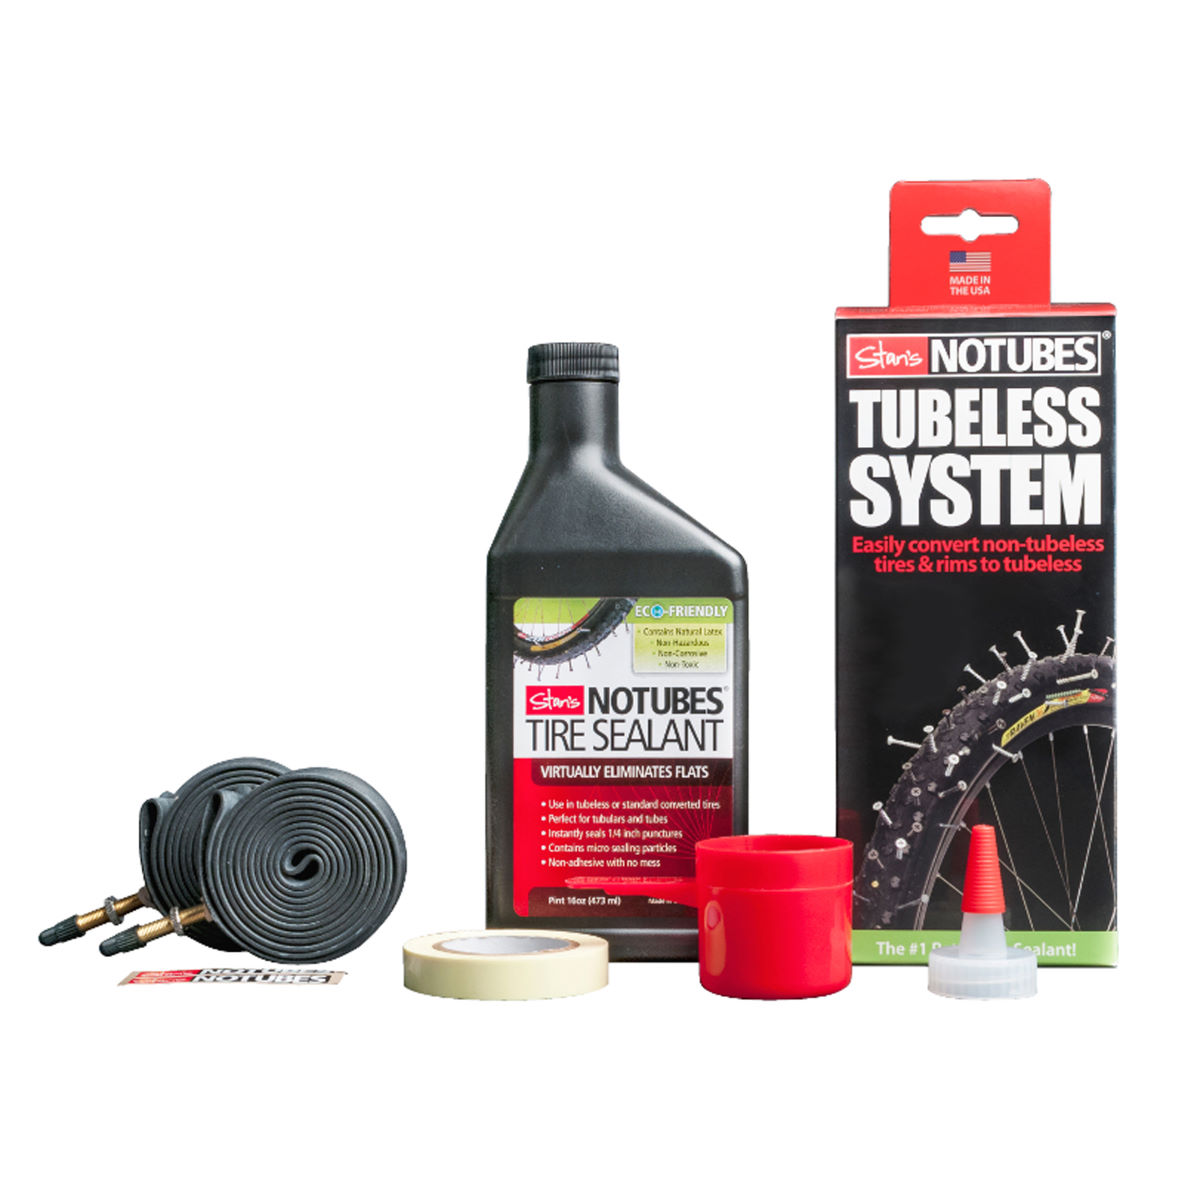 Kit tubeless Stans No Tubes - Cross Country 29er Noir Accessoires tubeless